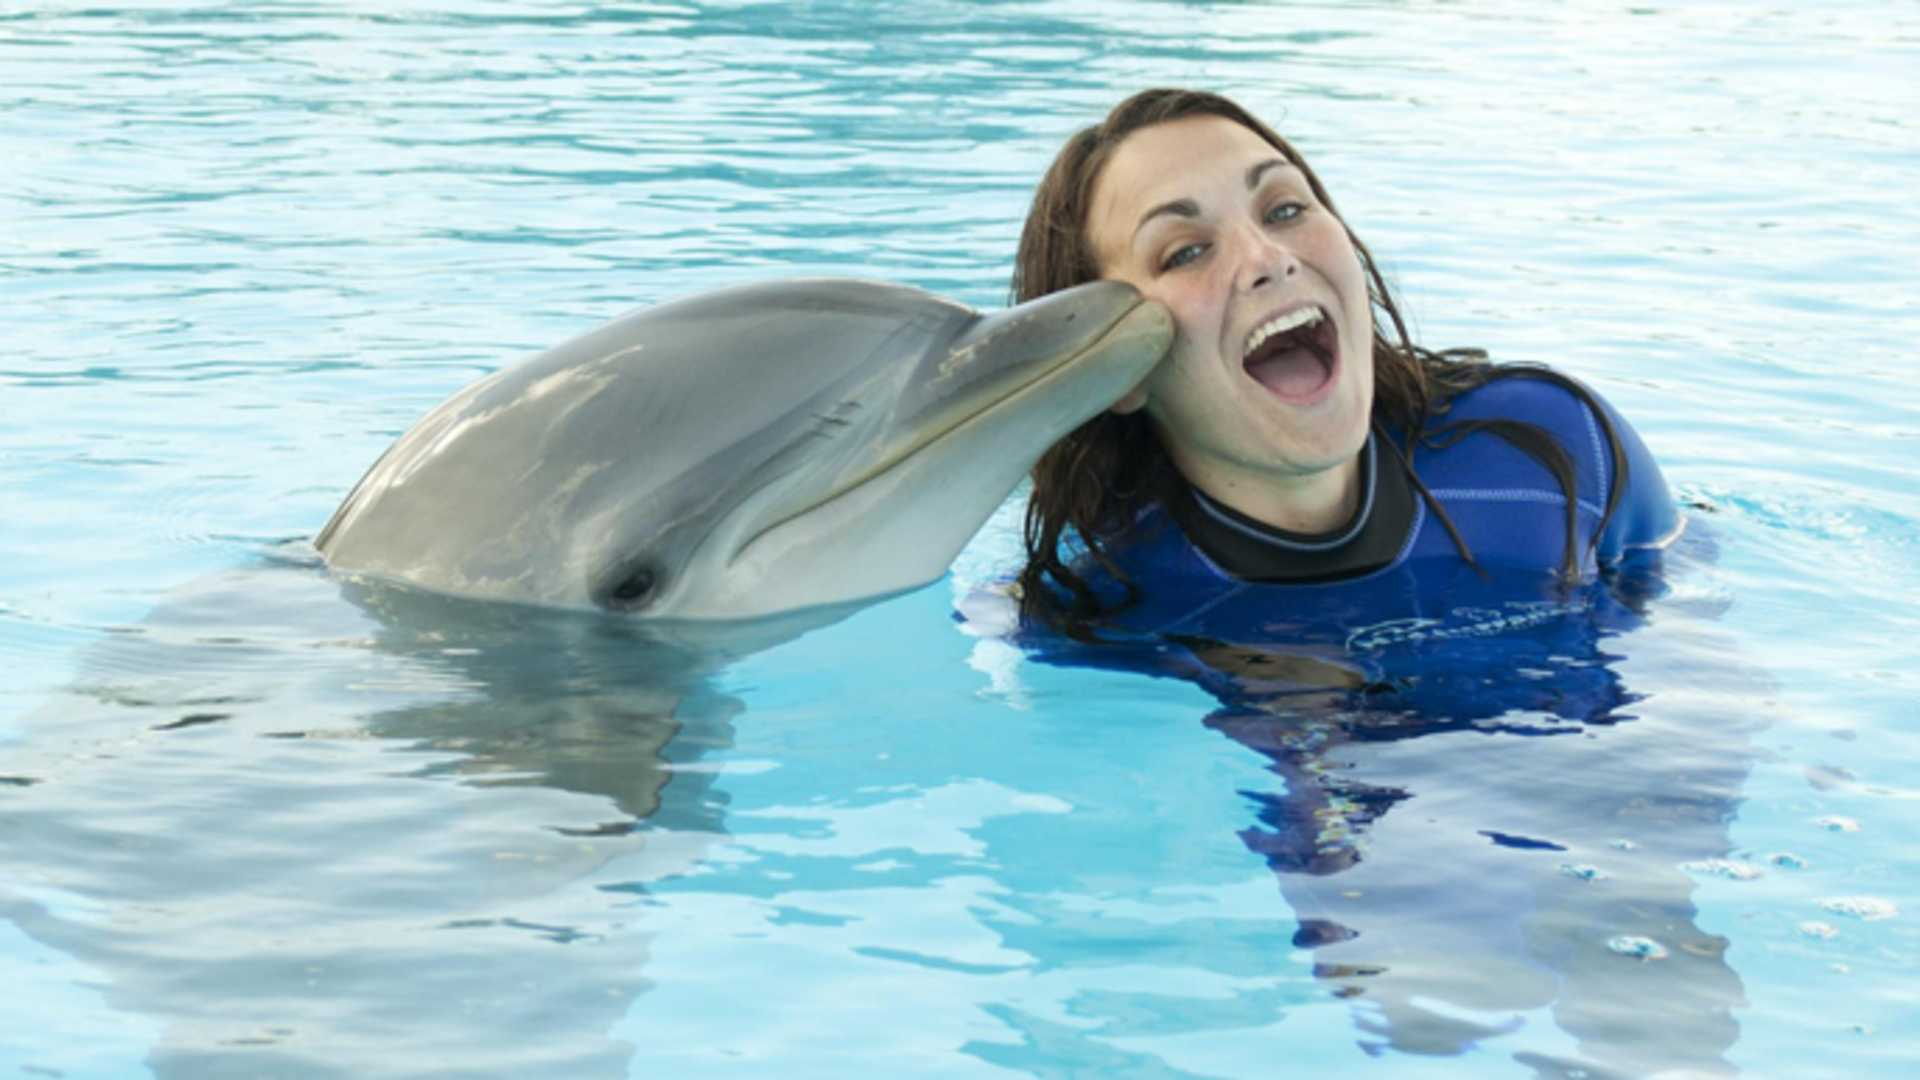 Swin with Dolphins